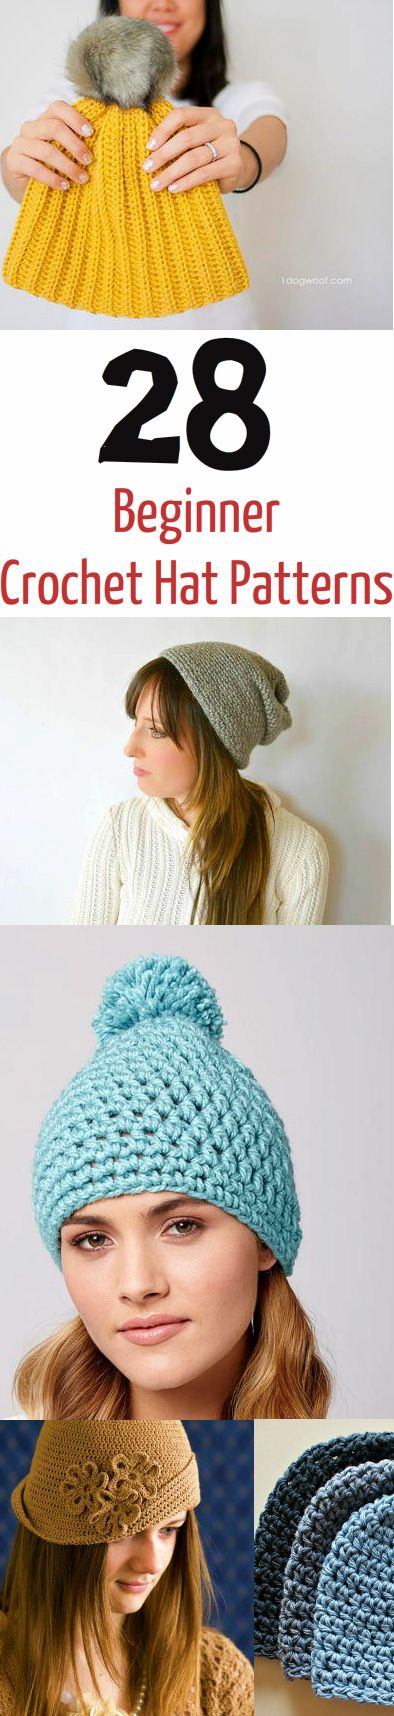 Crochet hat patterns that the whole family will love! From beanies and slouchy hats to winter caps, these crochet projects will keep you cozy.: